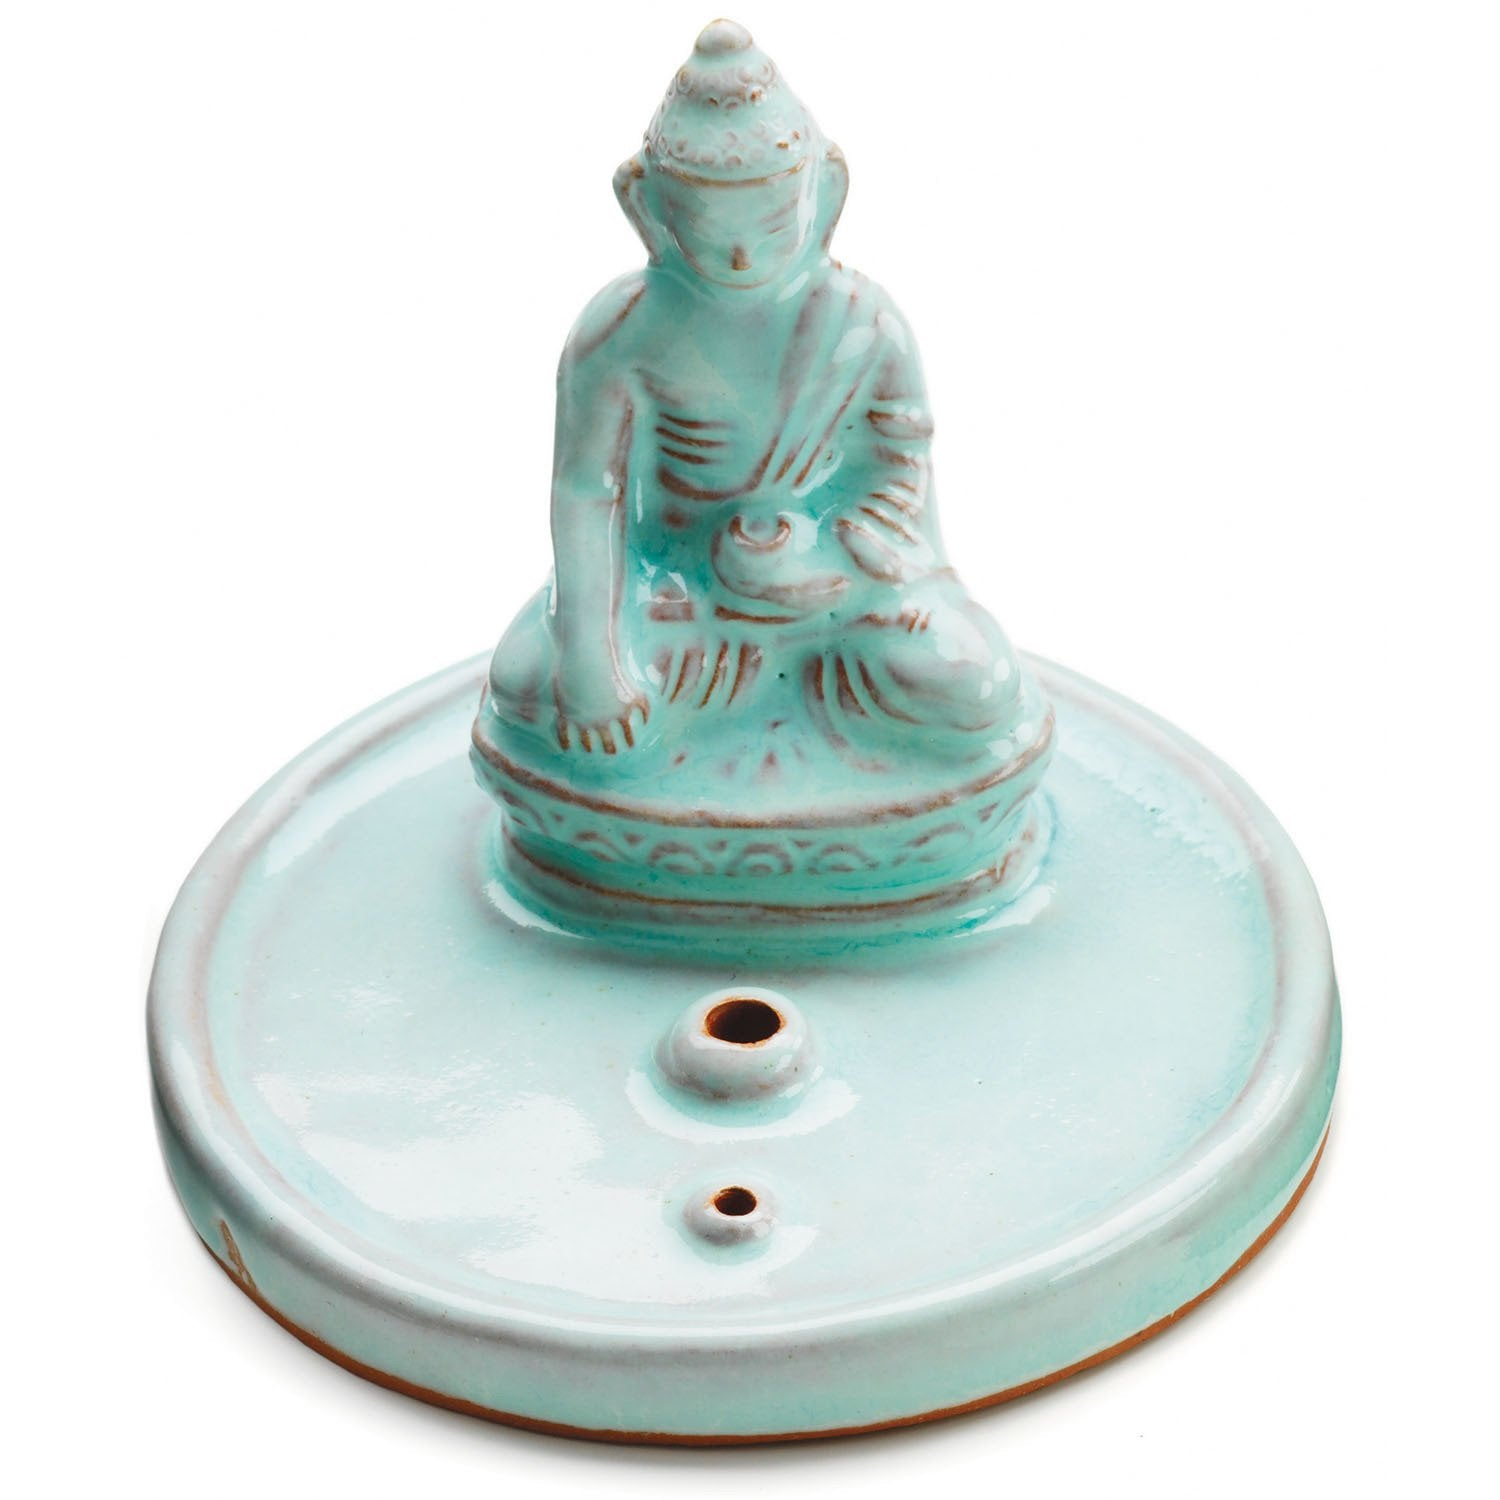 Incense Burner - Celadon Buddha